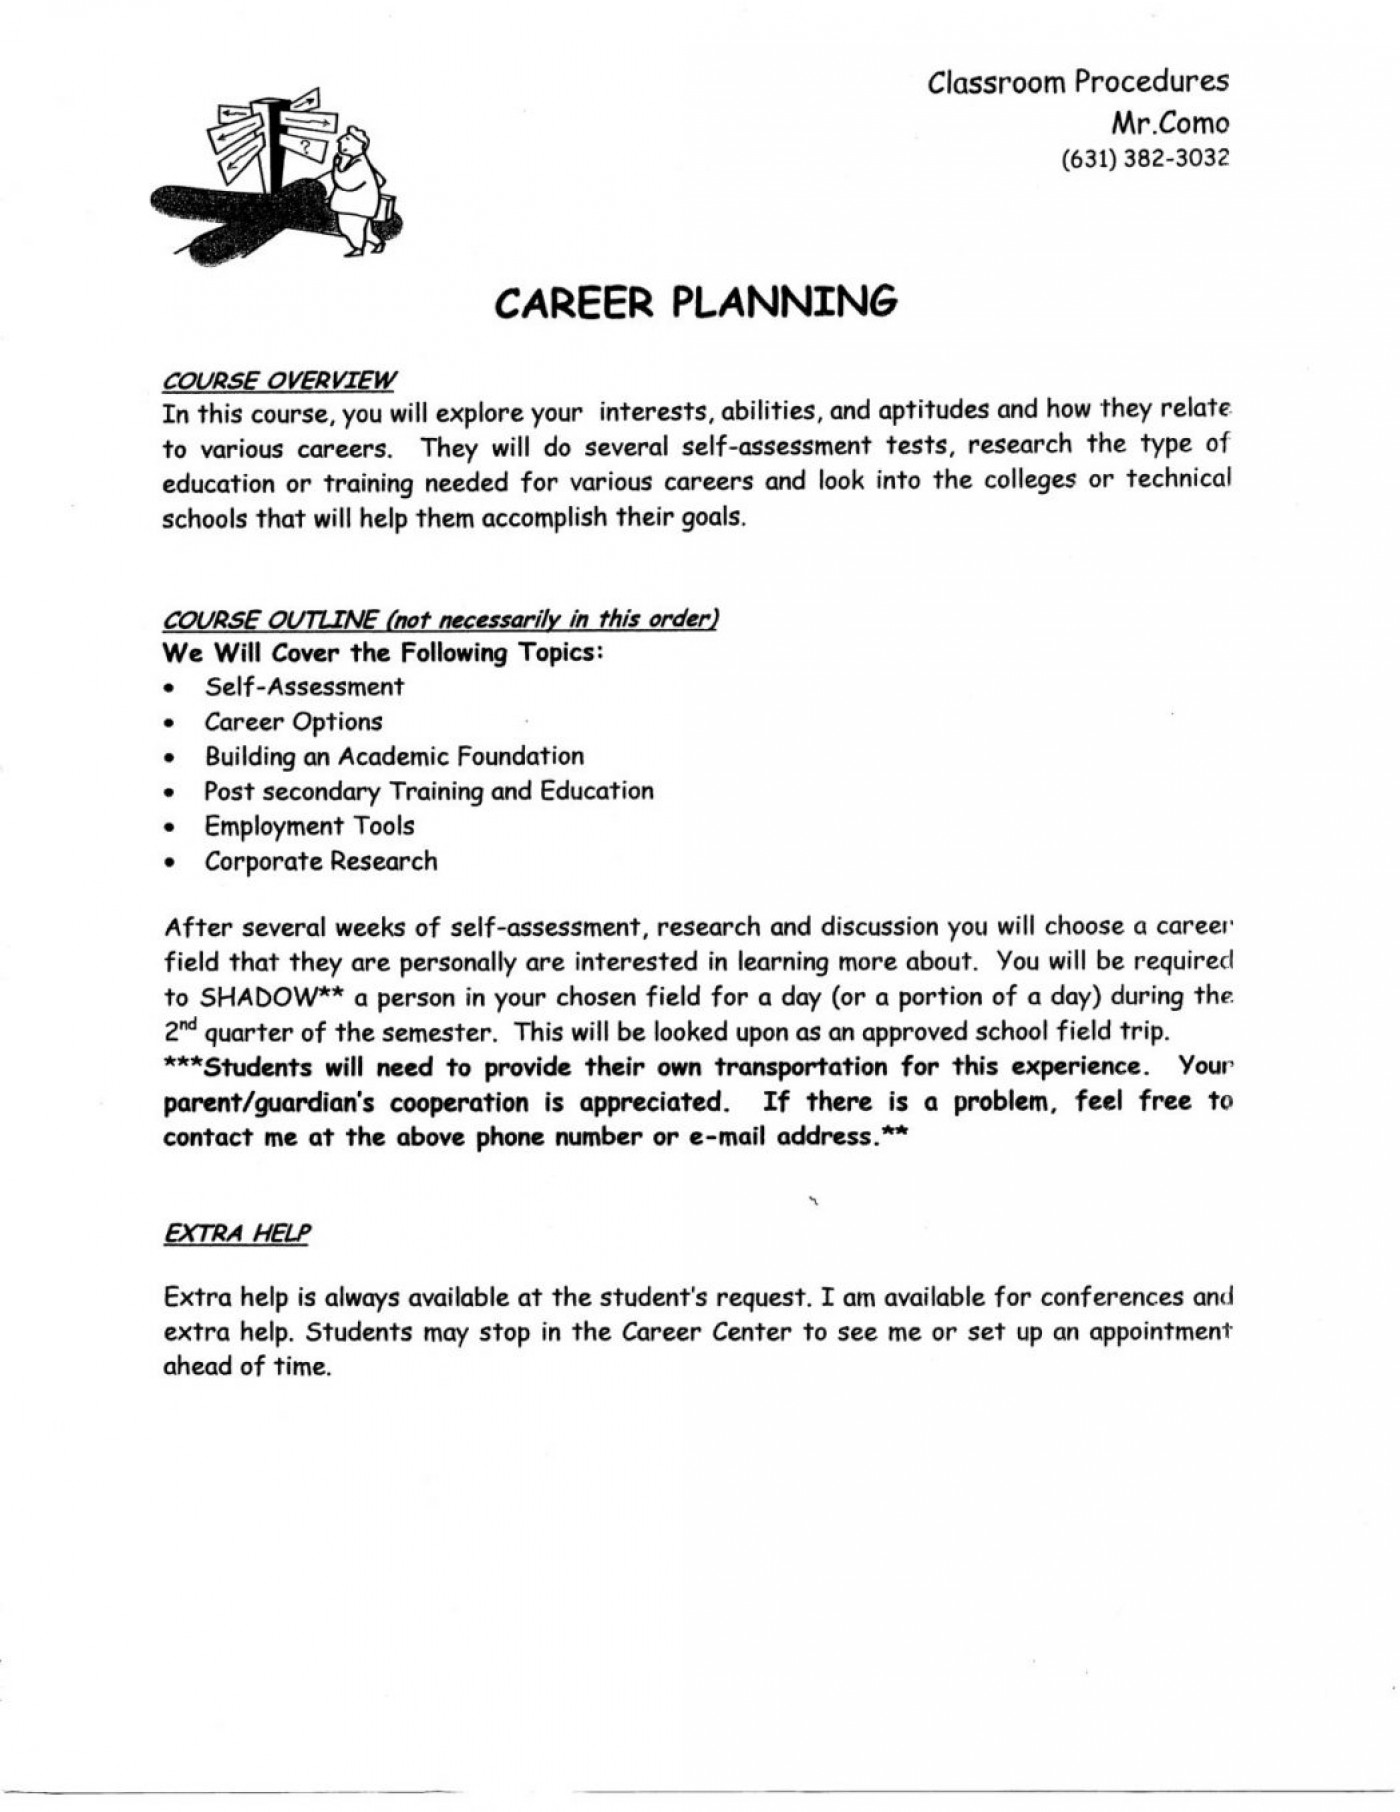 006 Future Plan Essay Plans Career After Graduation College Application Outline Format Planni Template Admission Layout Pdf 1048x1357 Impressive Ielts For Scholarship Sample Example 1400